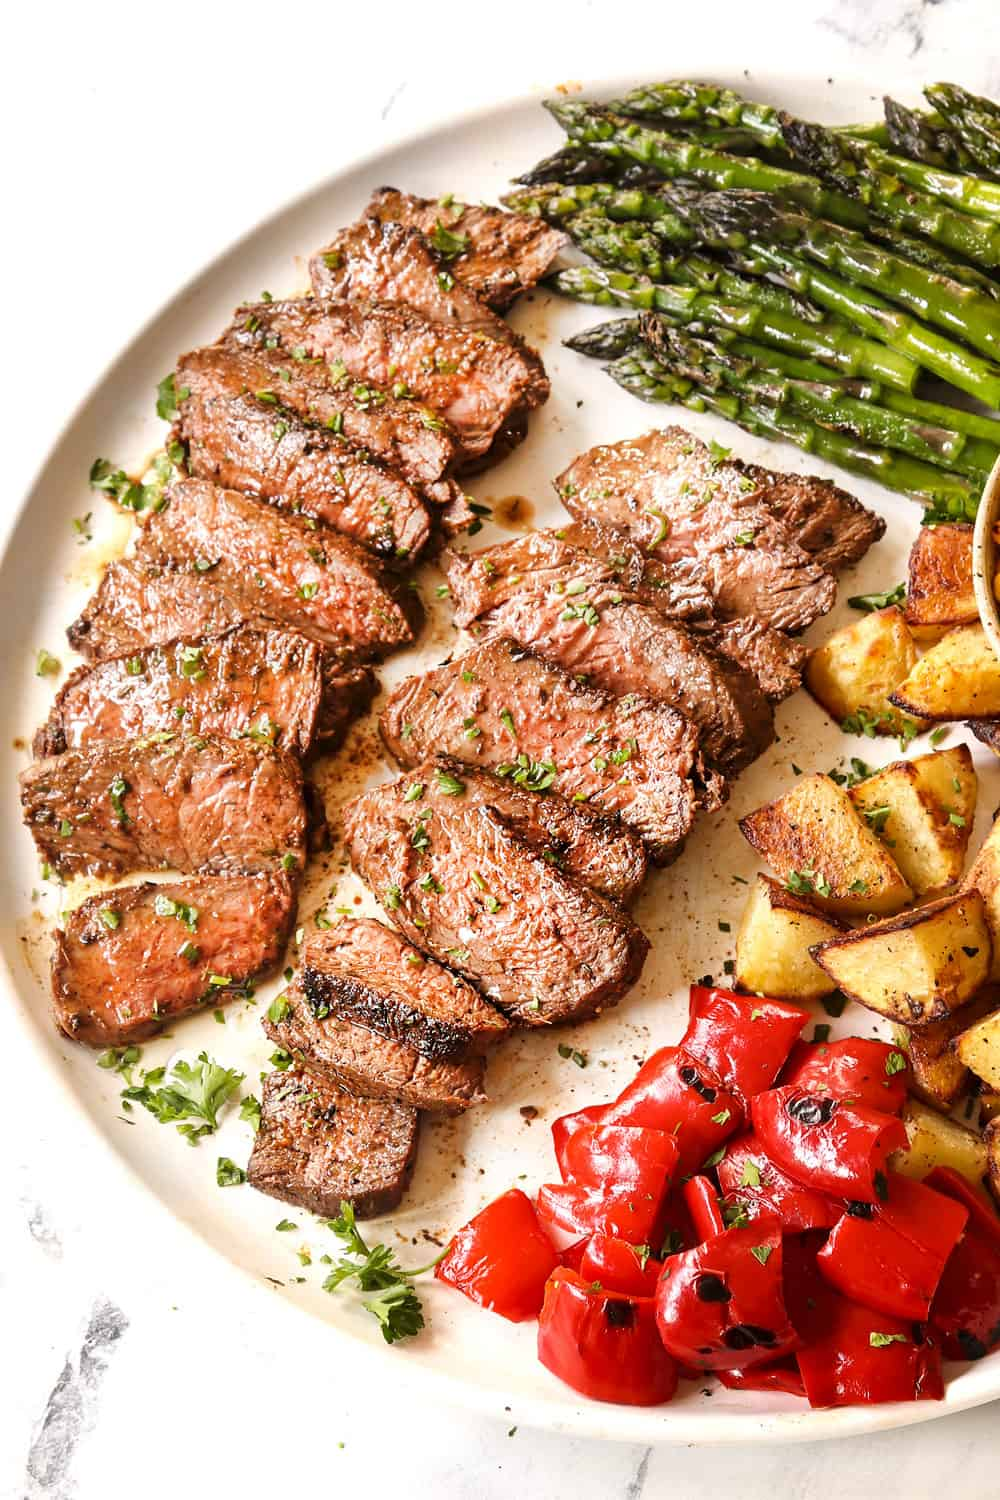 top view of sliced grilled sirloin steak on a white platter